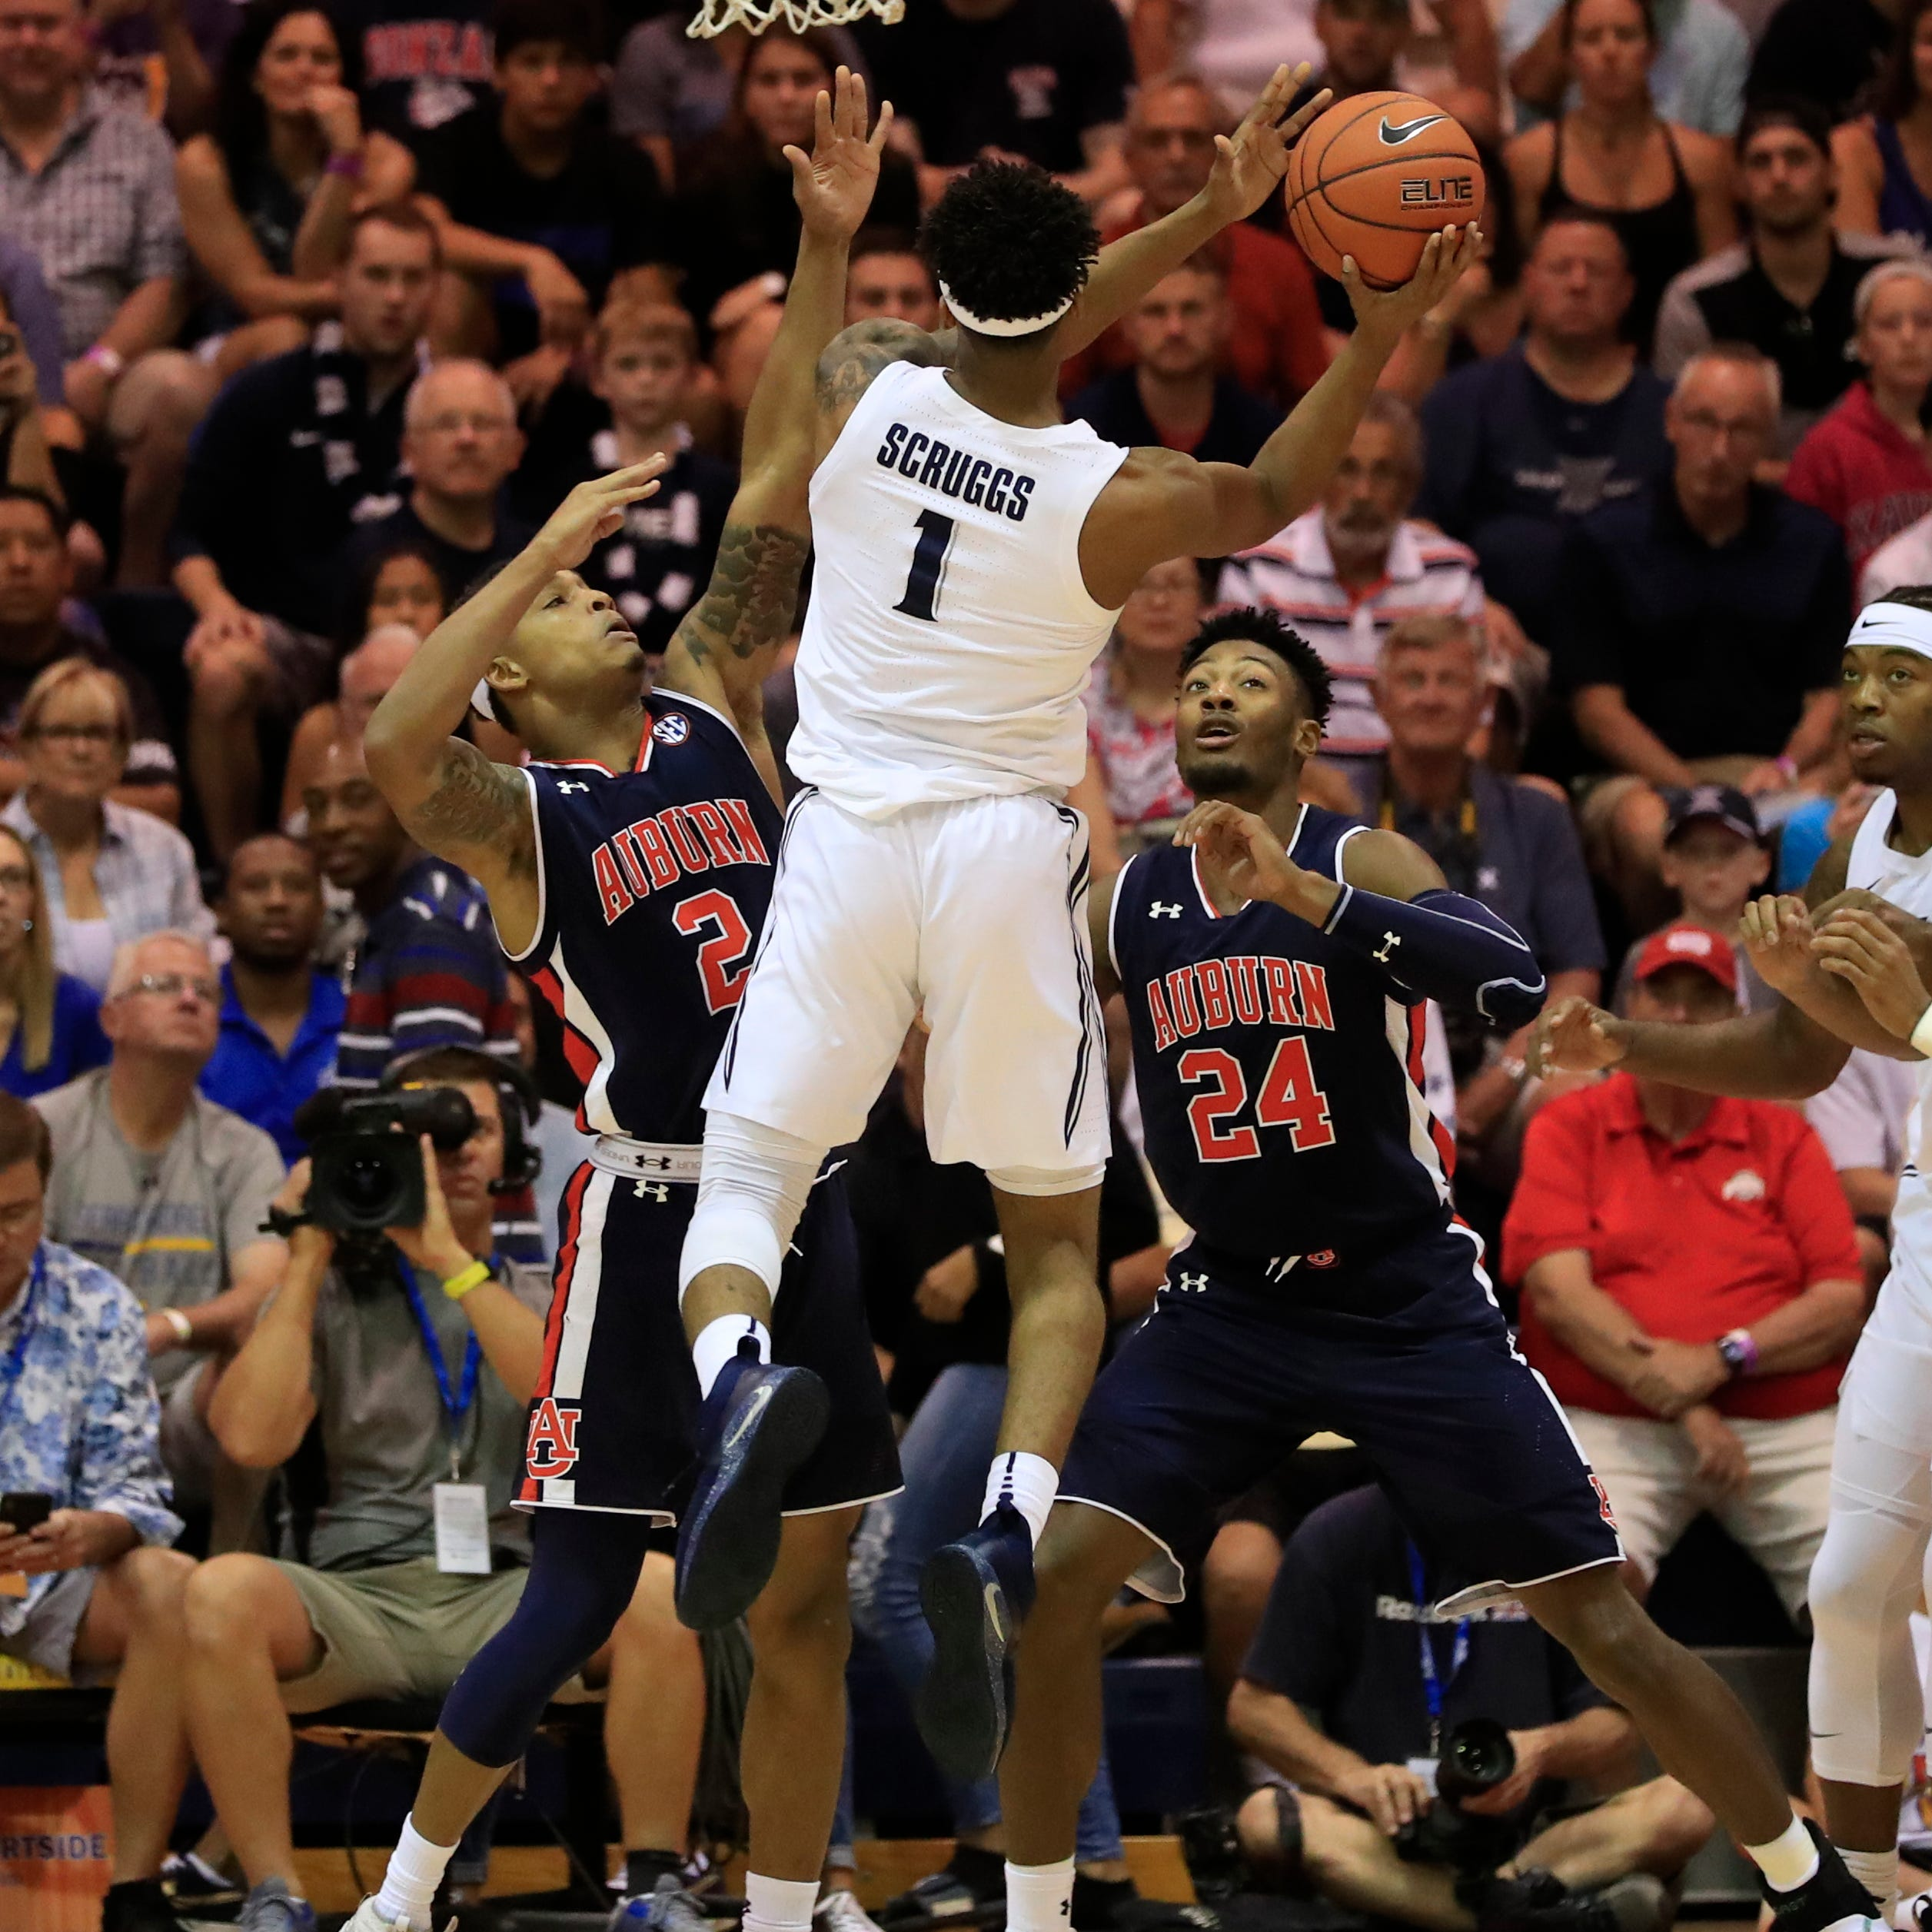 Xavier falls to No. 8 Auburn in an overtime thriller to open the Maui Invitational